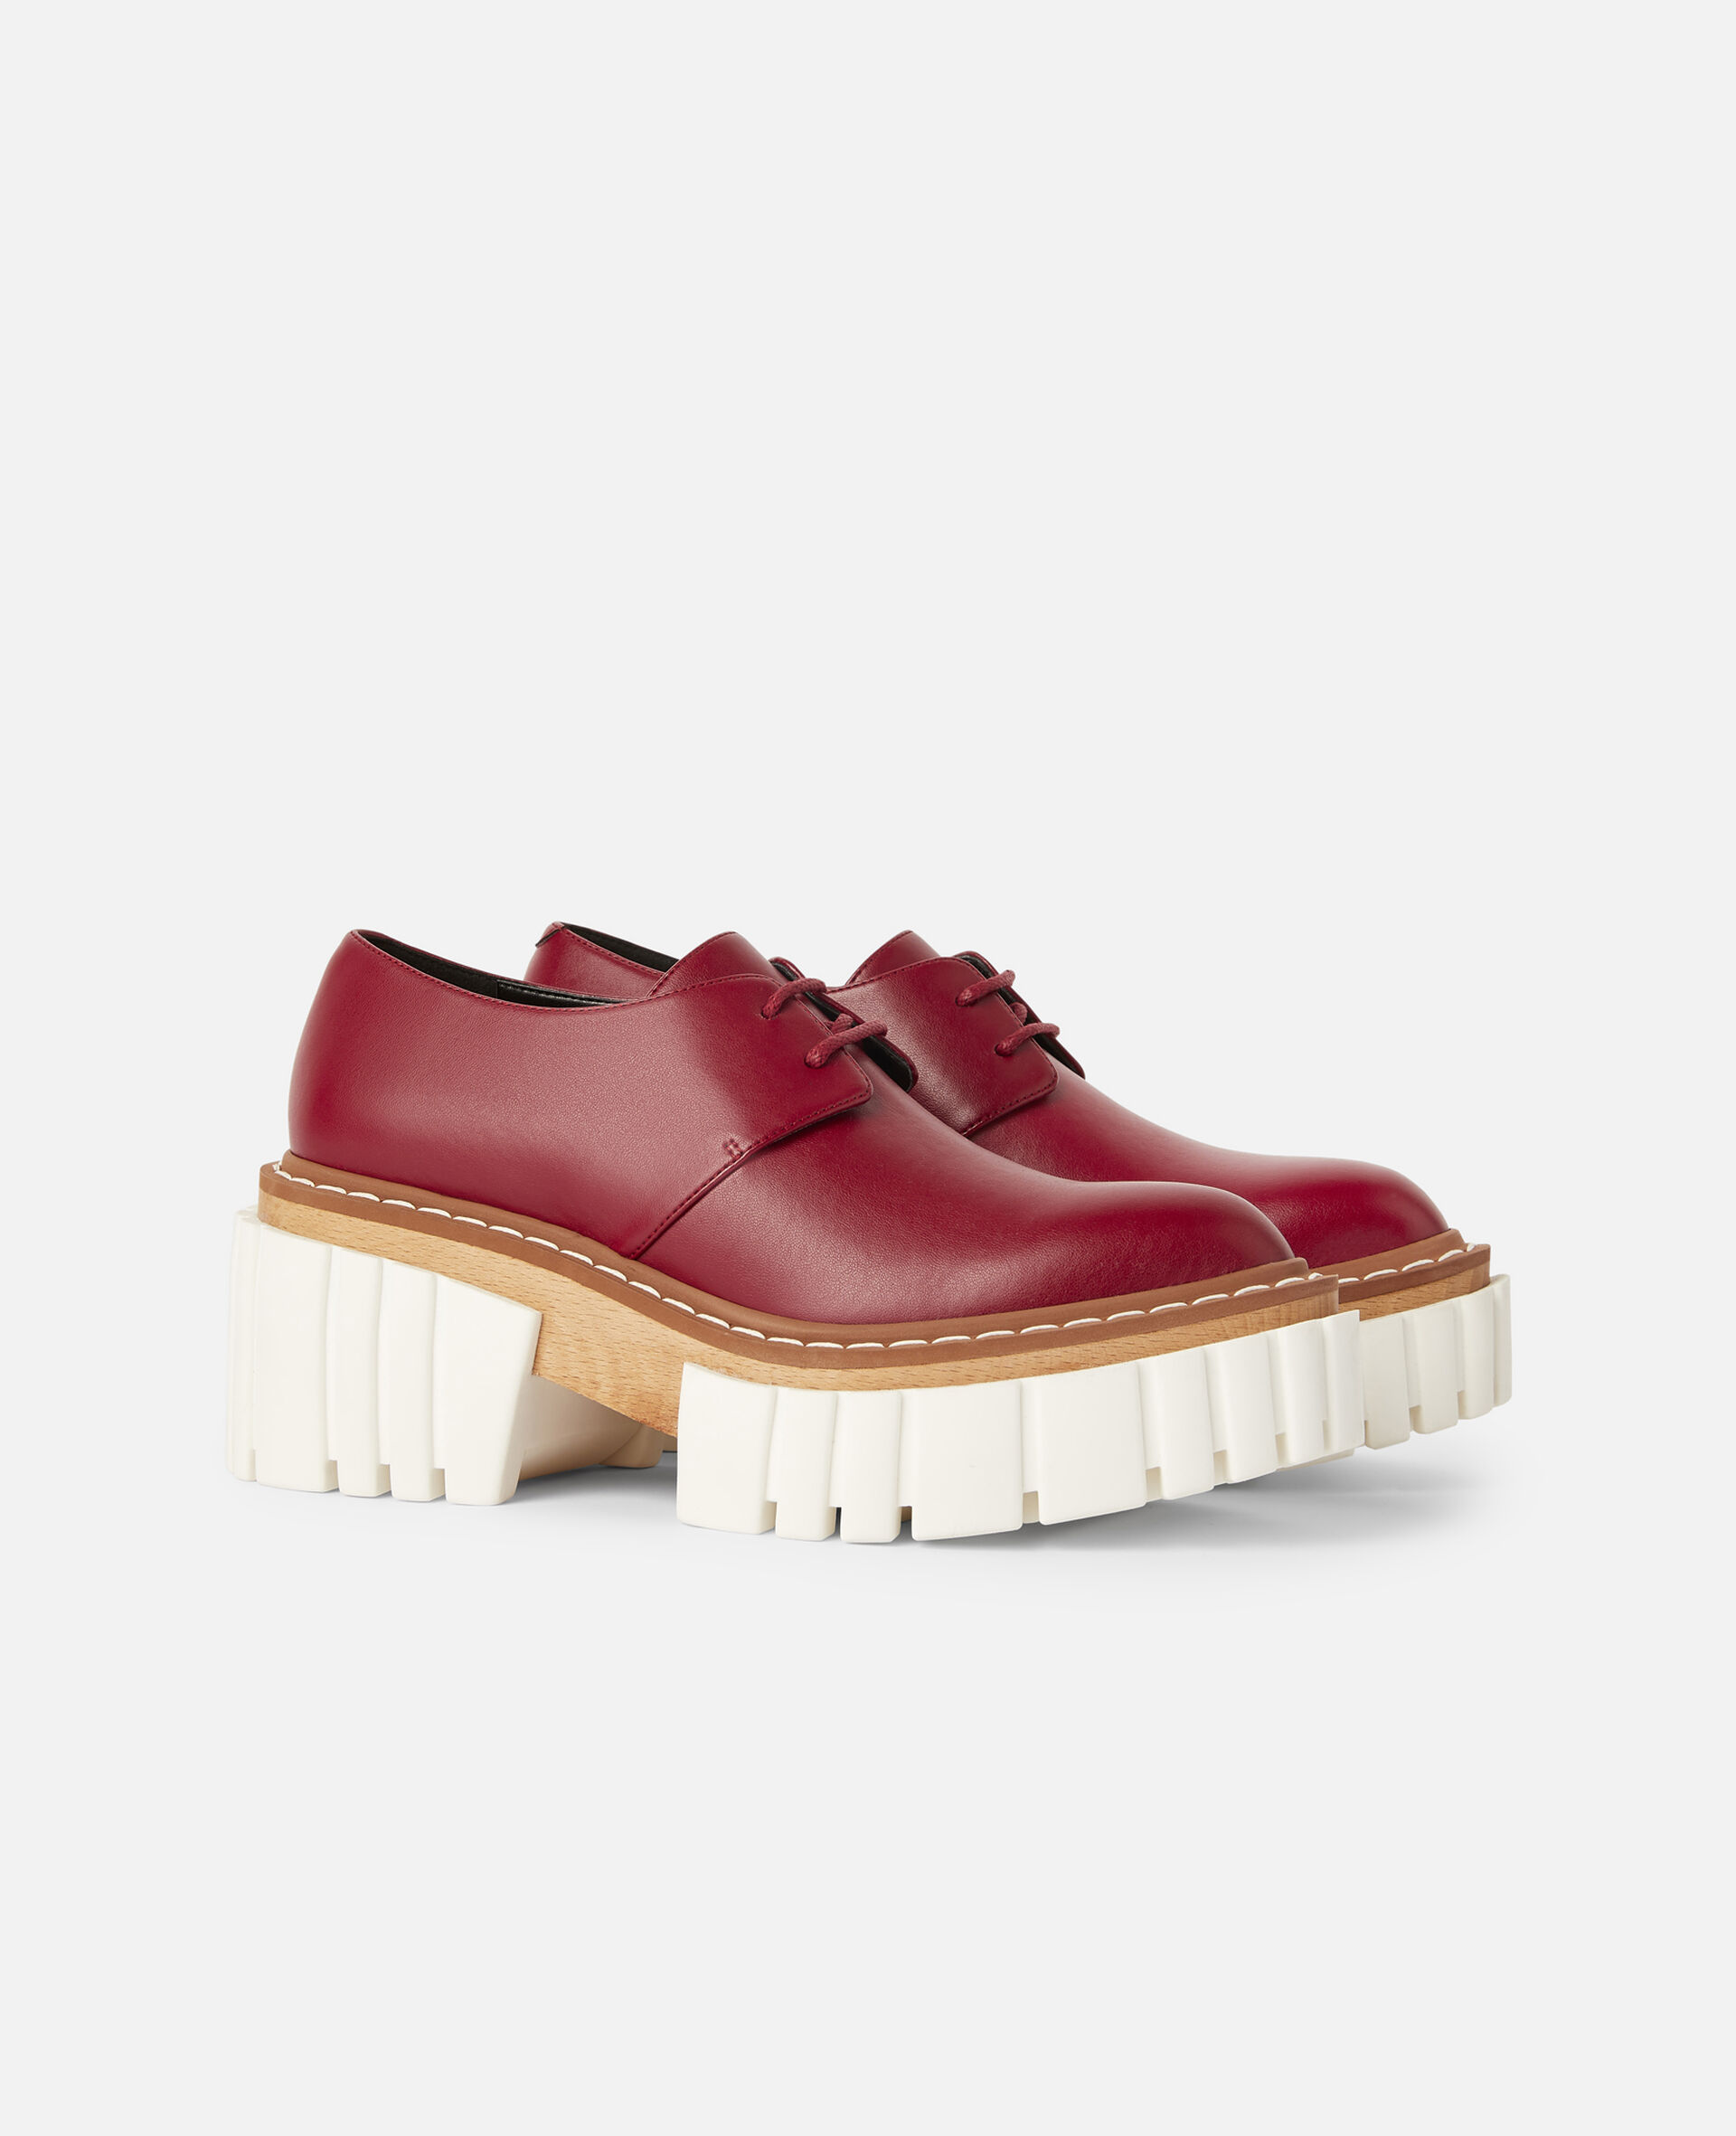 Emilie Lace-Up Shoes-Red-large image number 1